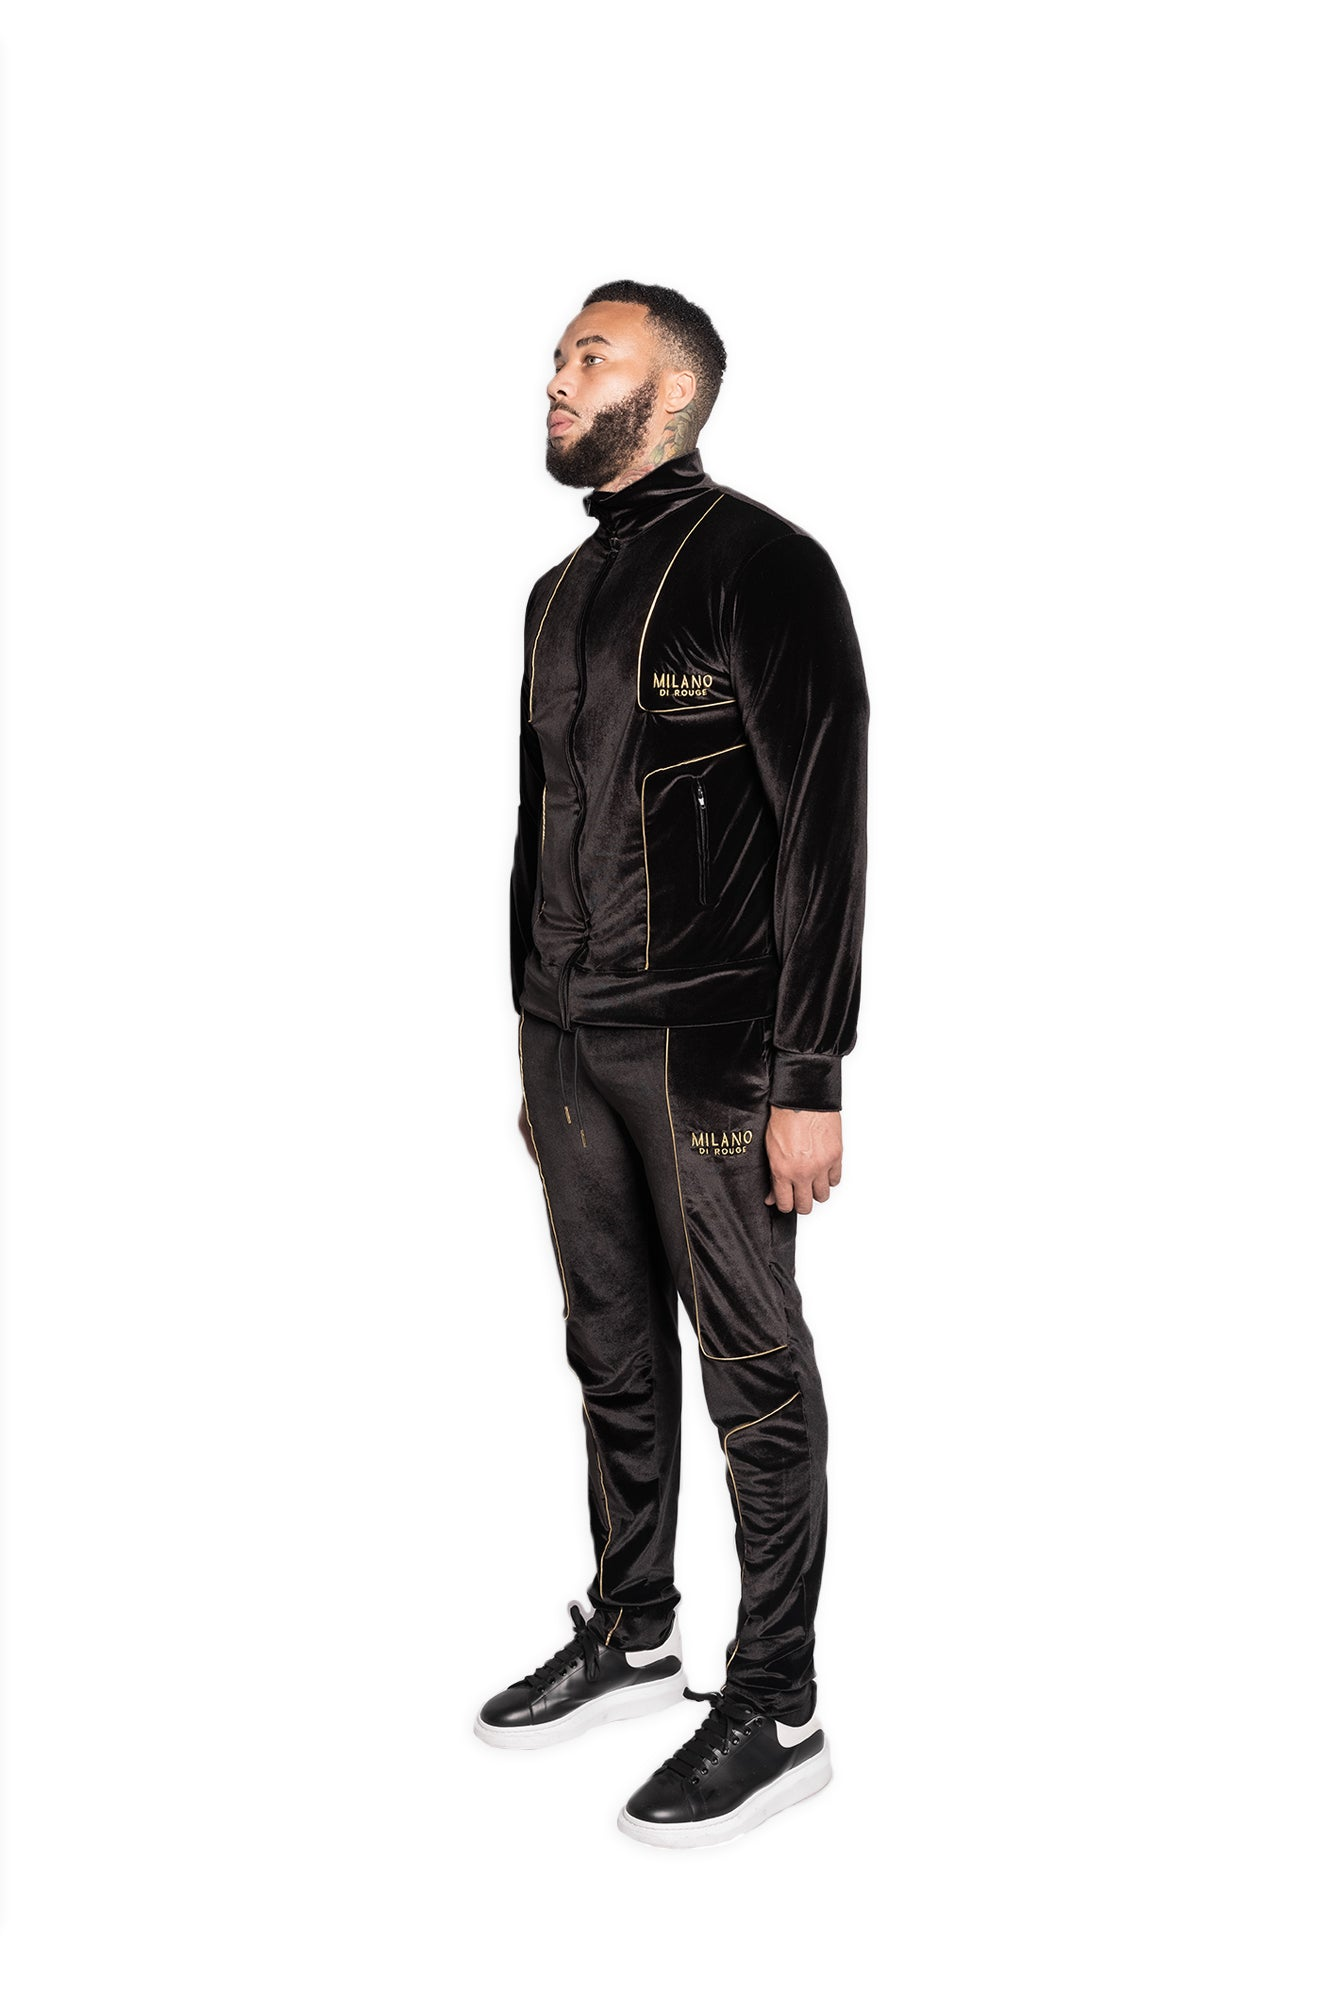 Velour Prez Set